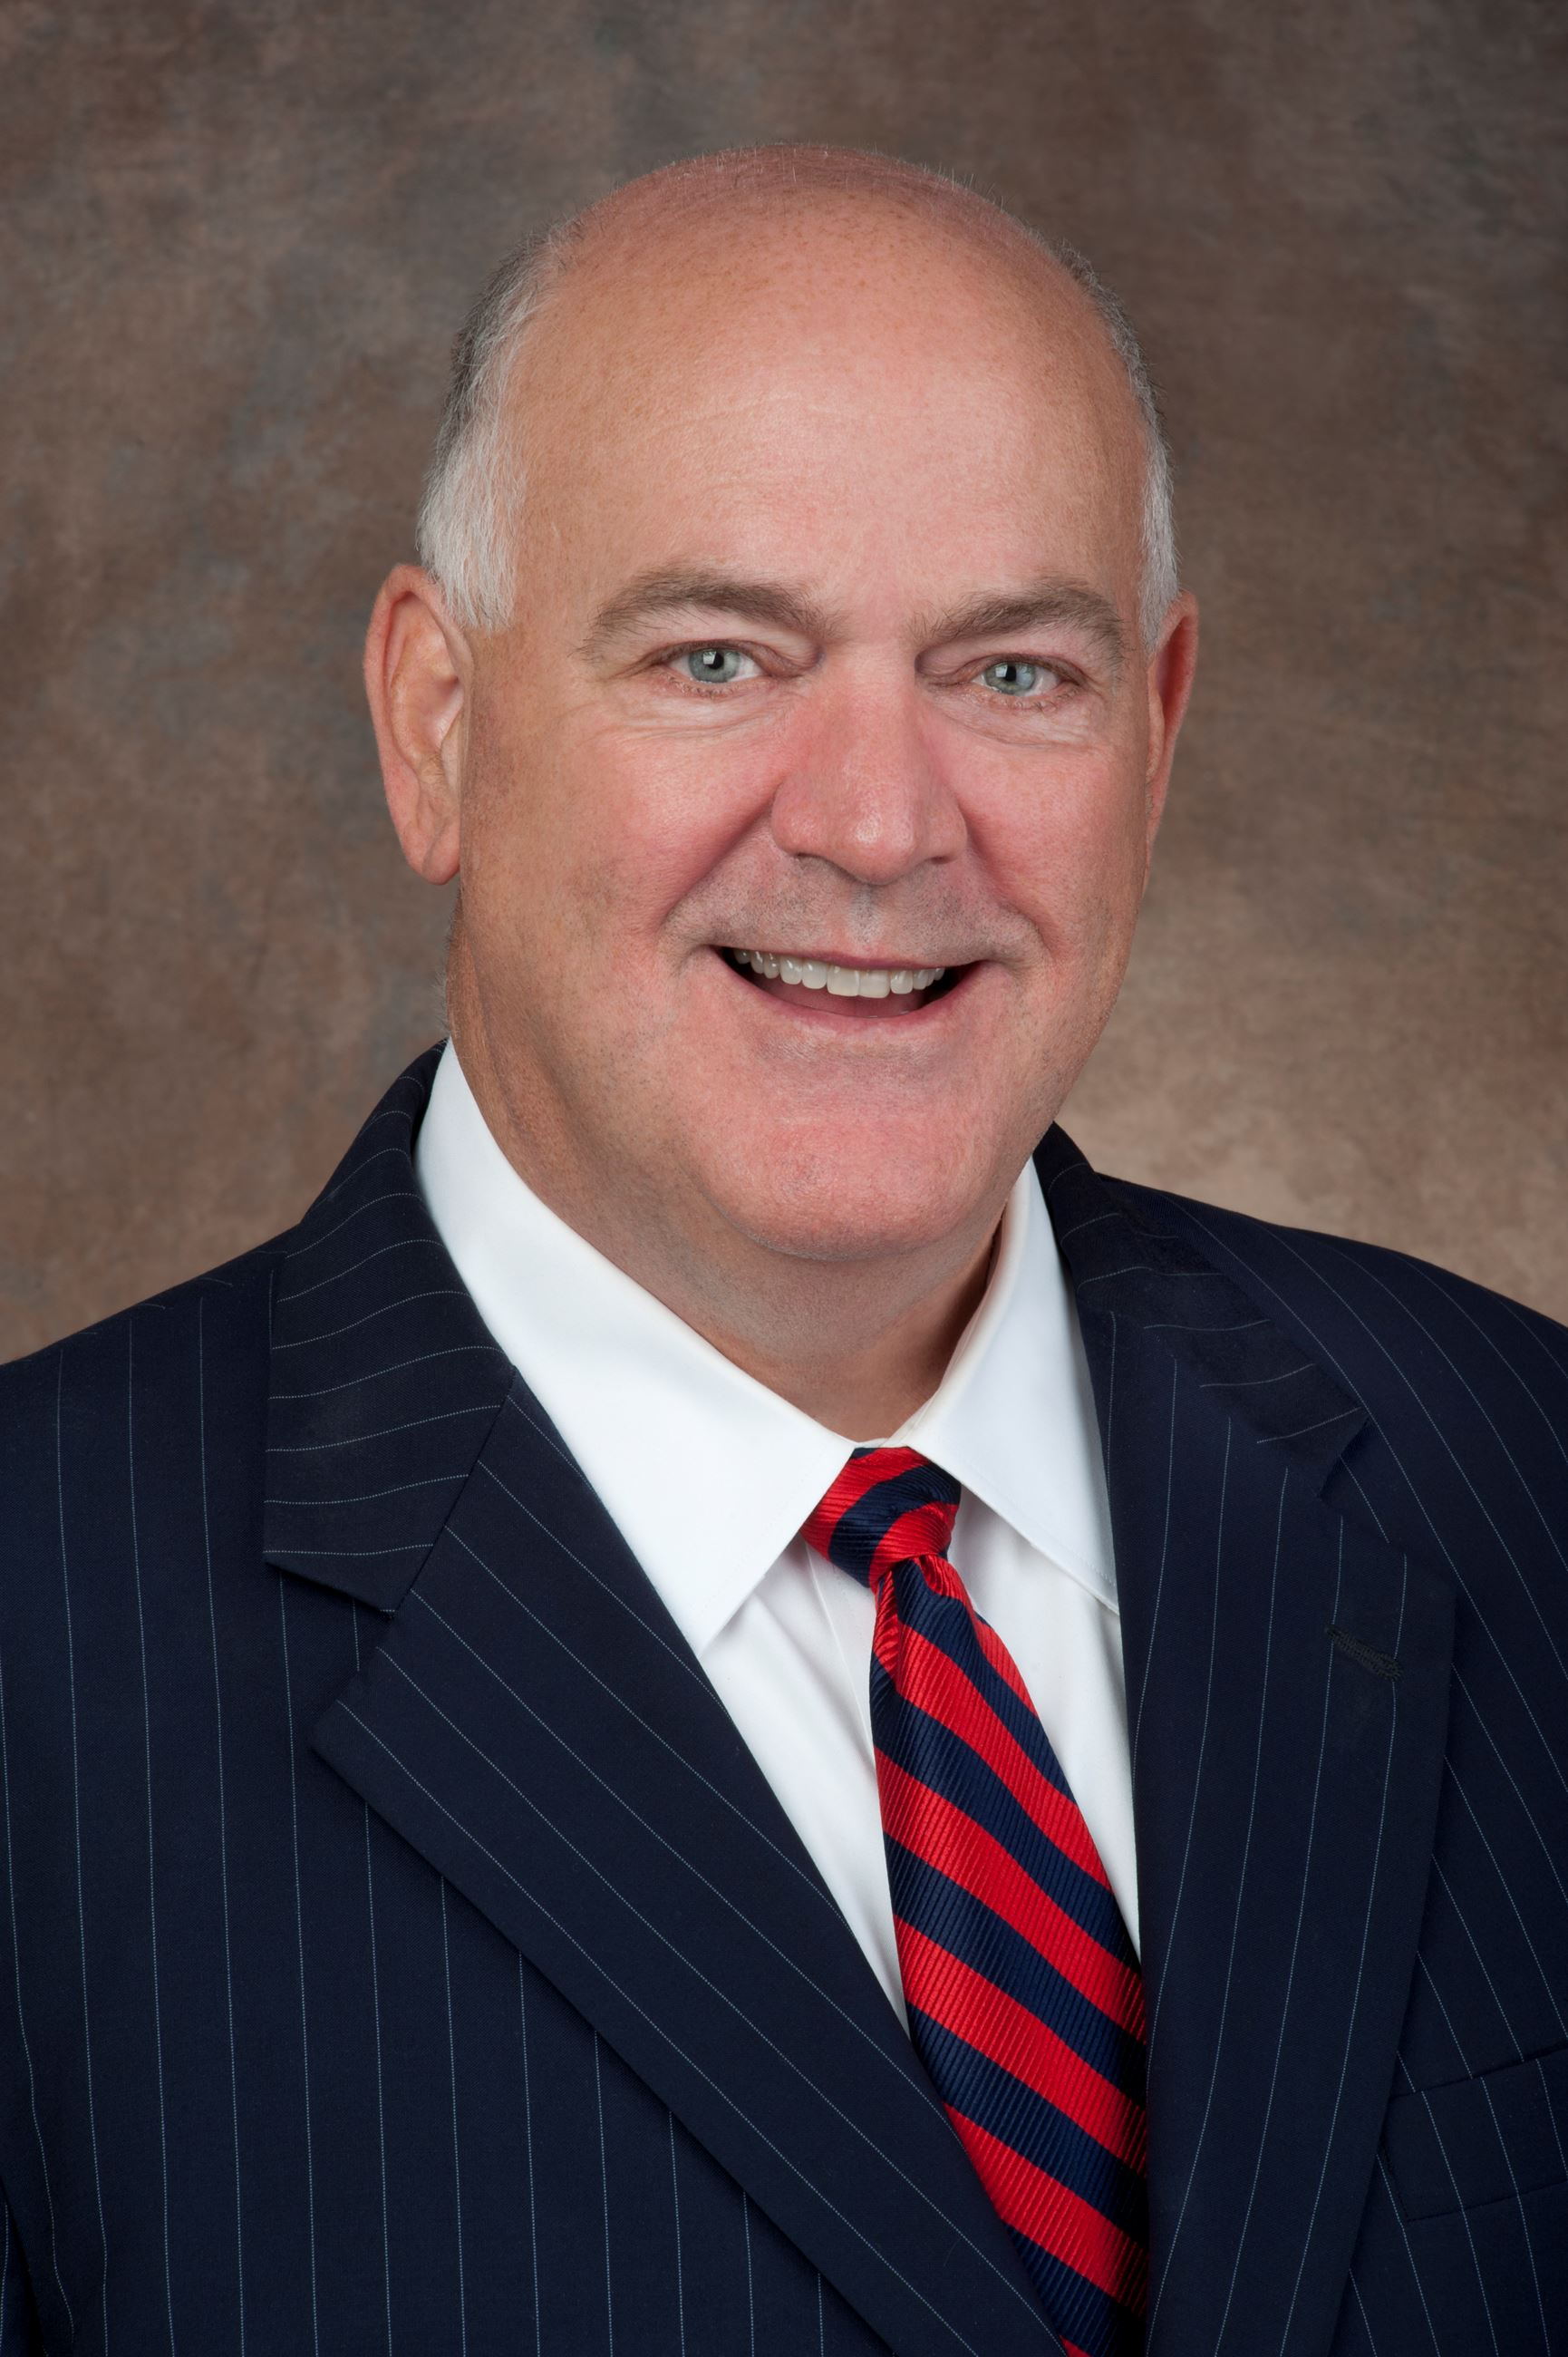 Jim D. Yarbrough, Mayor